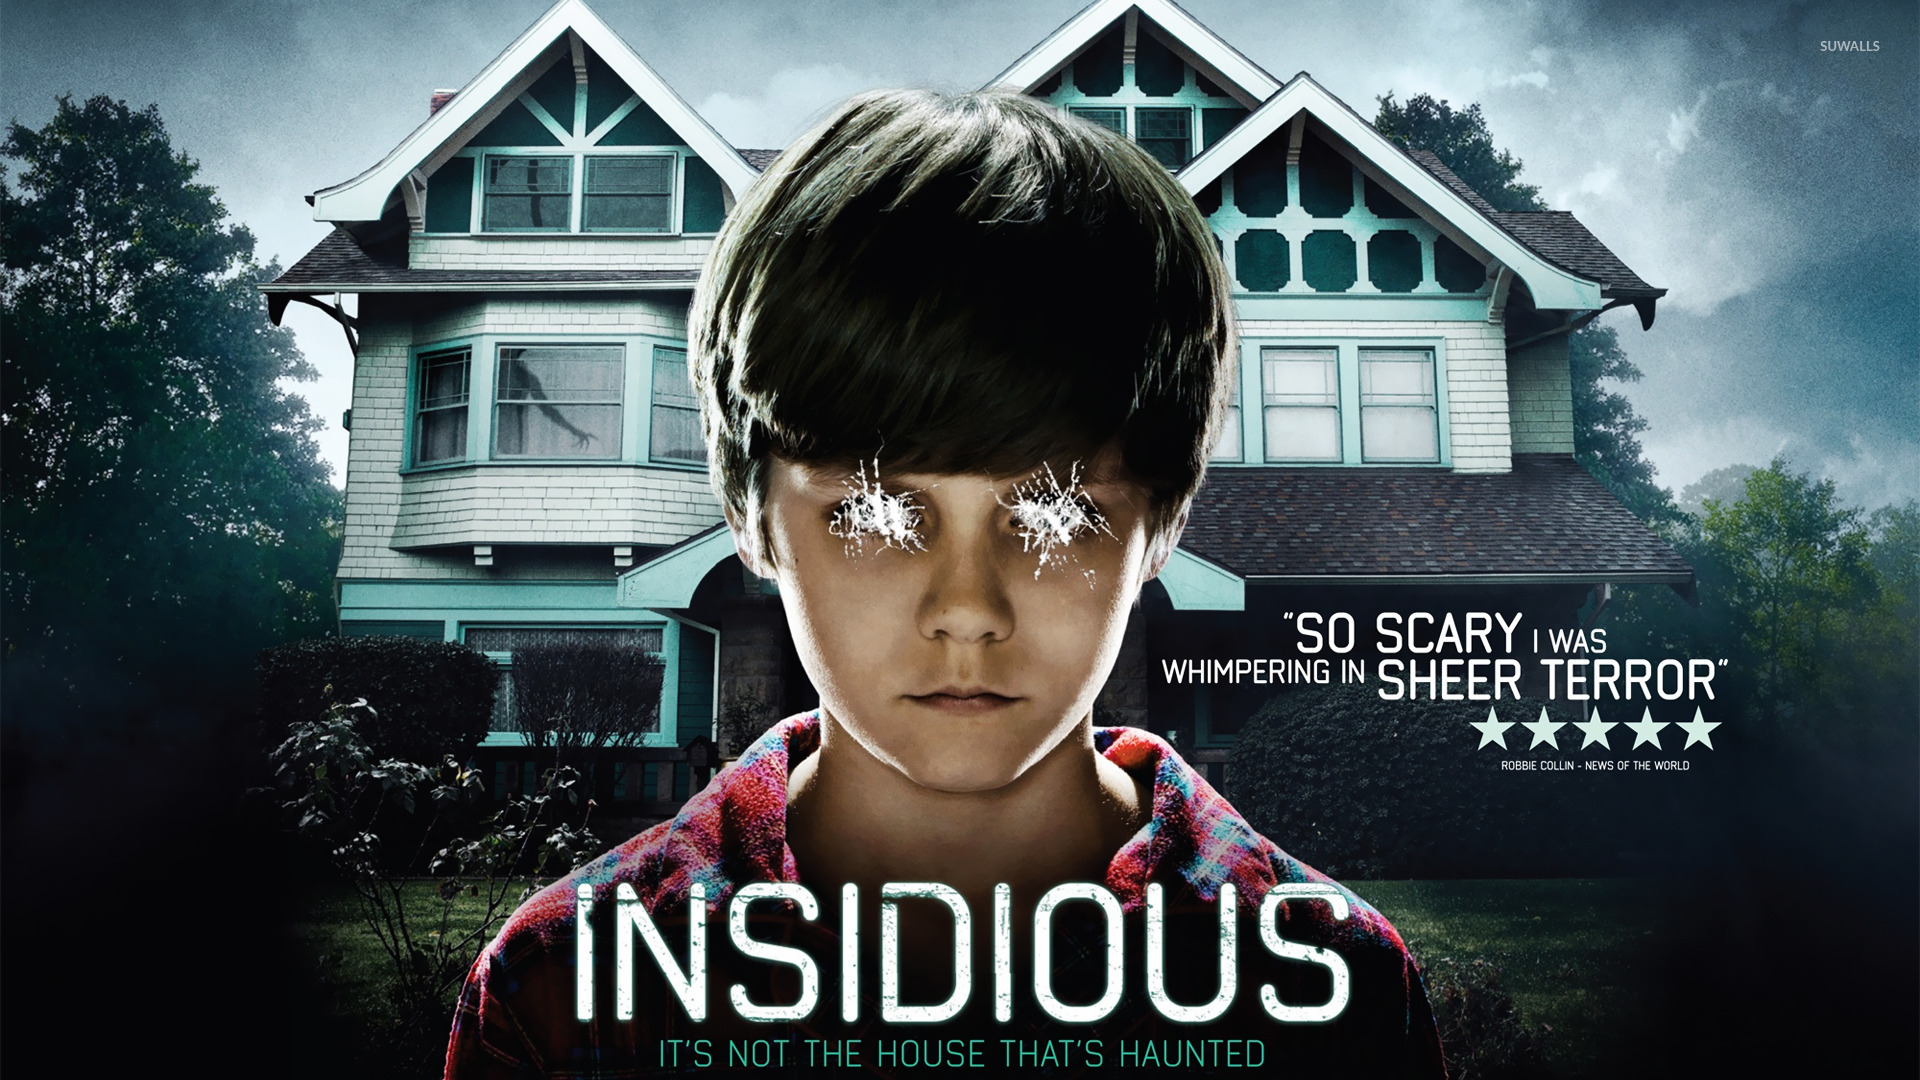 insidious 2 full movie download